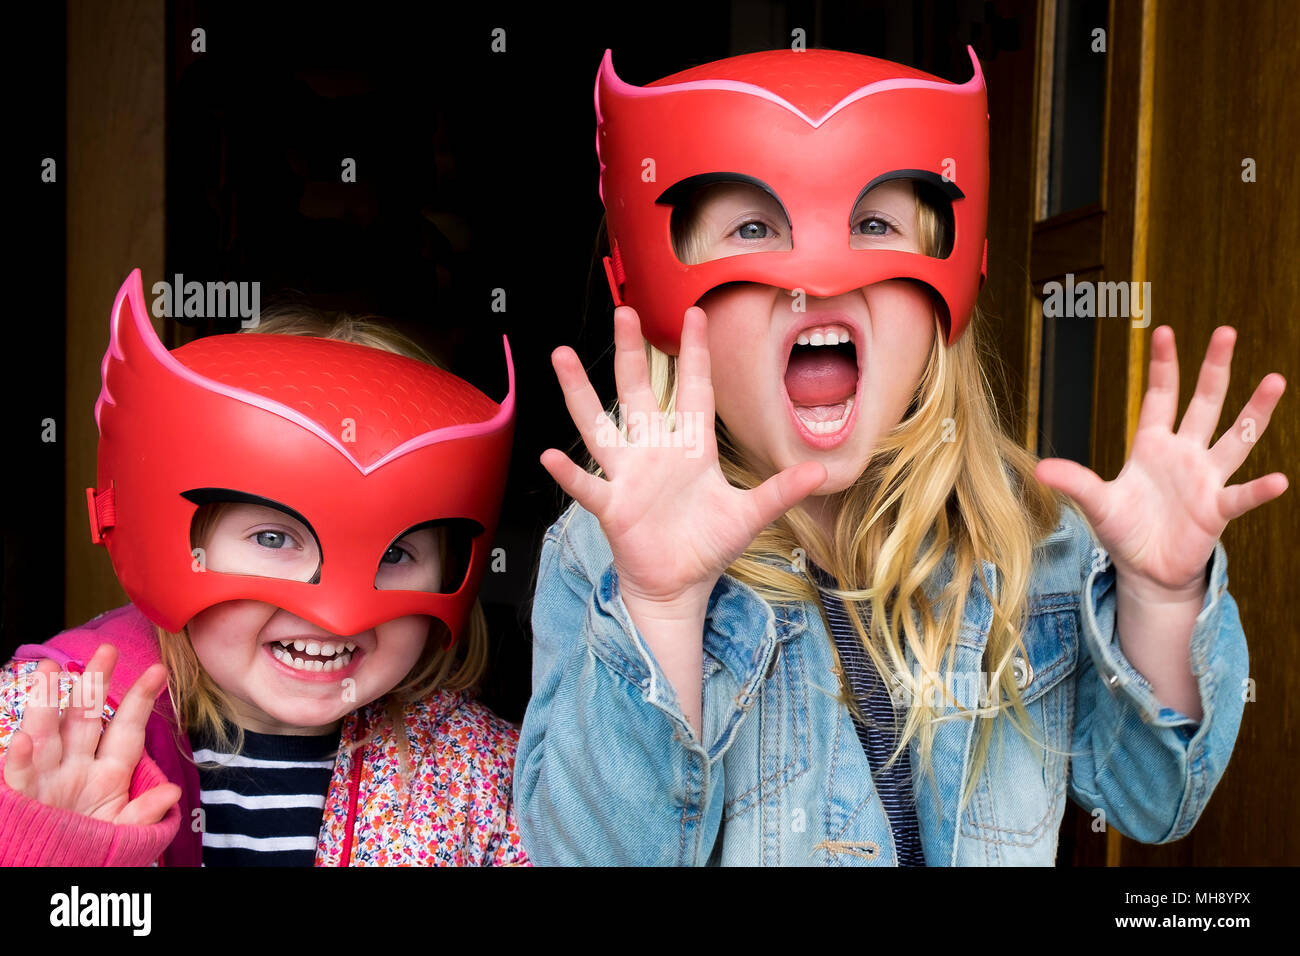 Children having fun wearing masks. - Stock Image